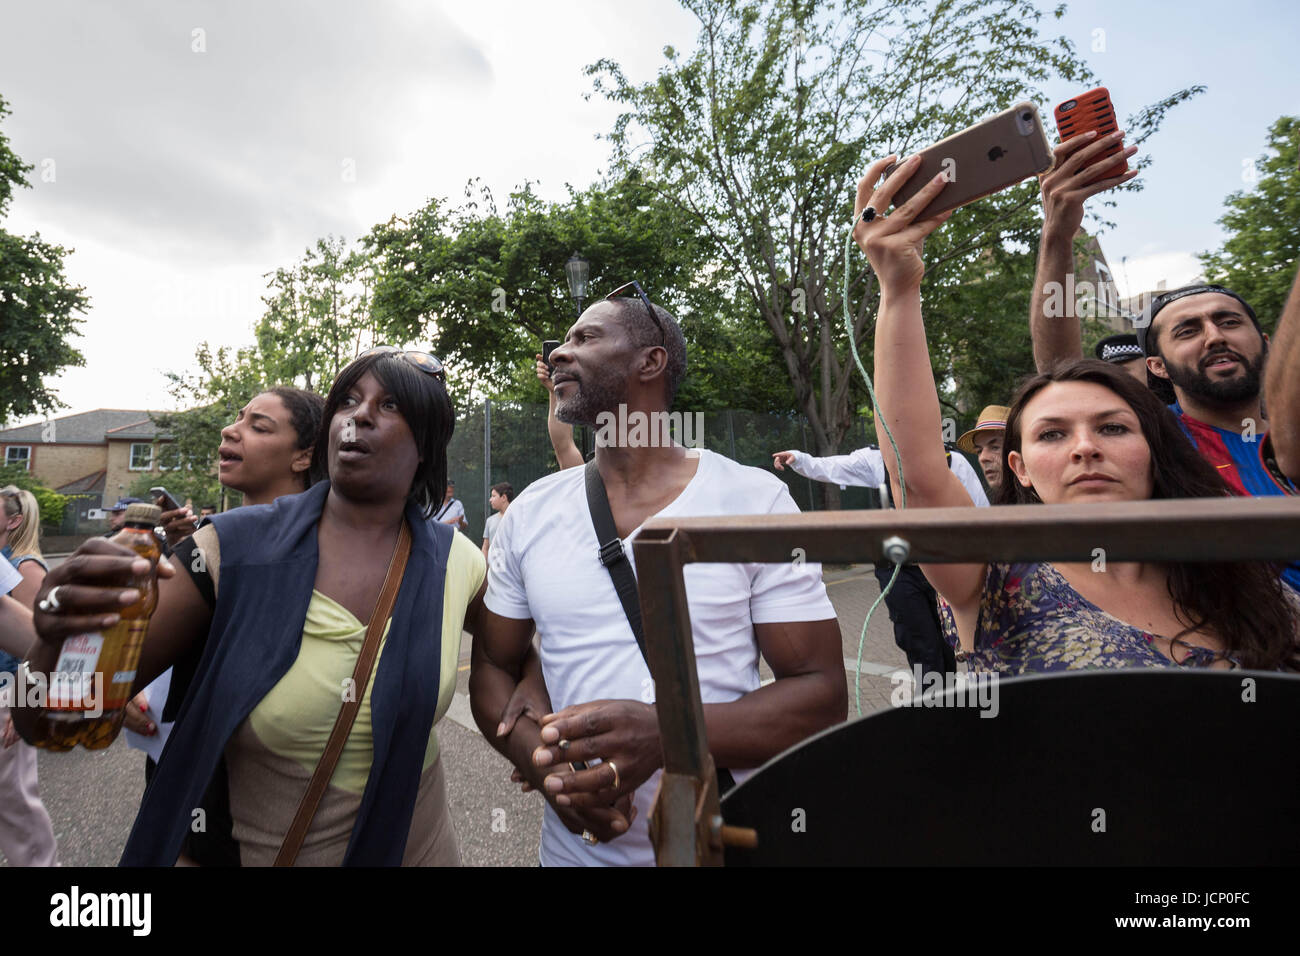 London, UK. 16th June, 2017. Angry scuffles with locals and police as PM Theresa May leaves St Clement's Church - Stock Image